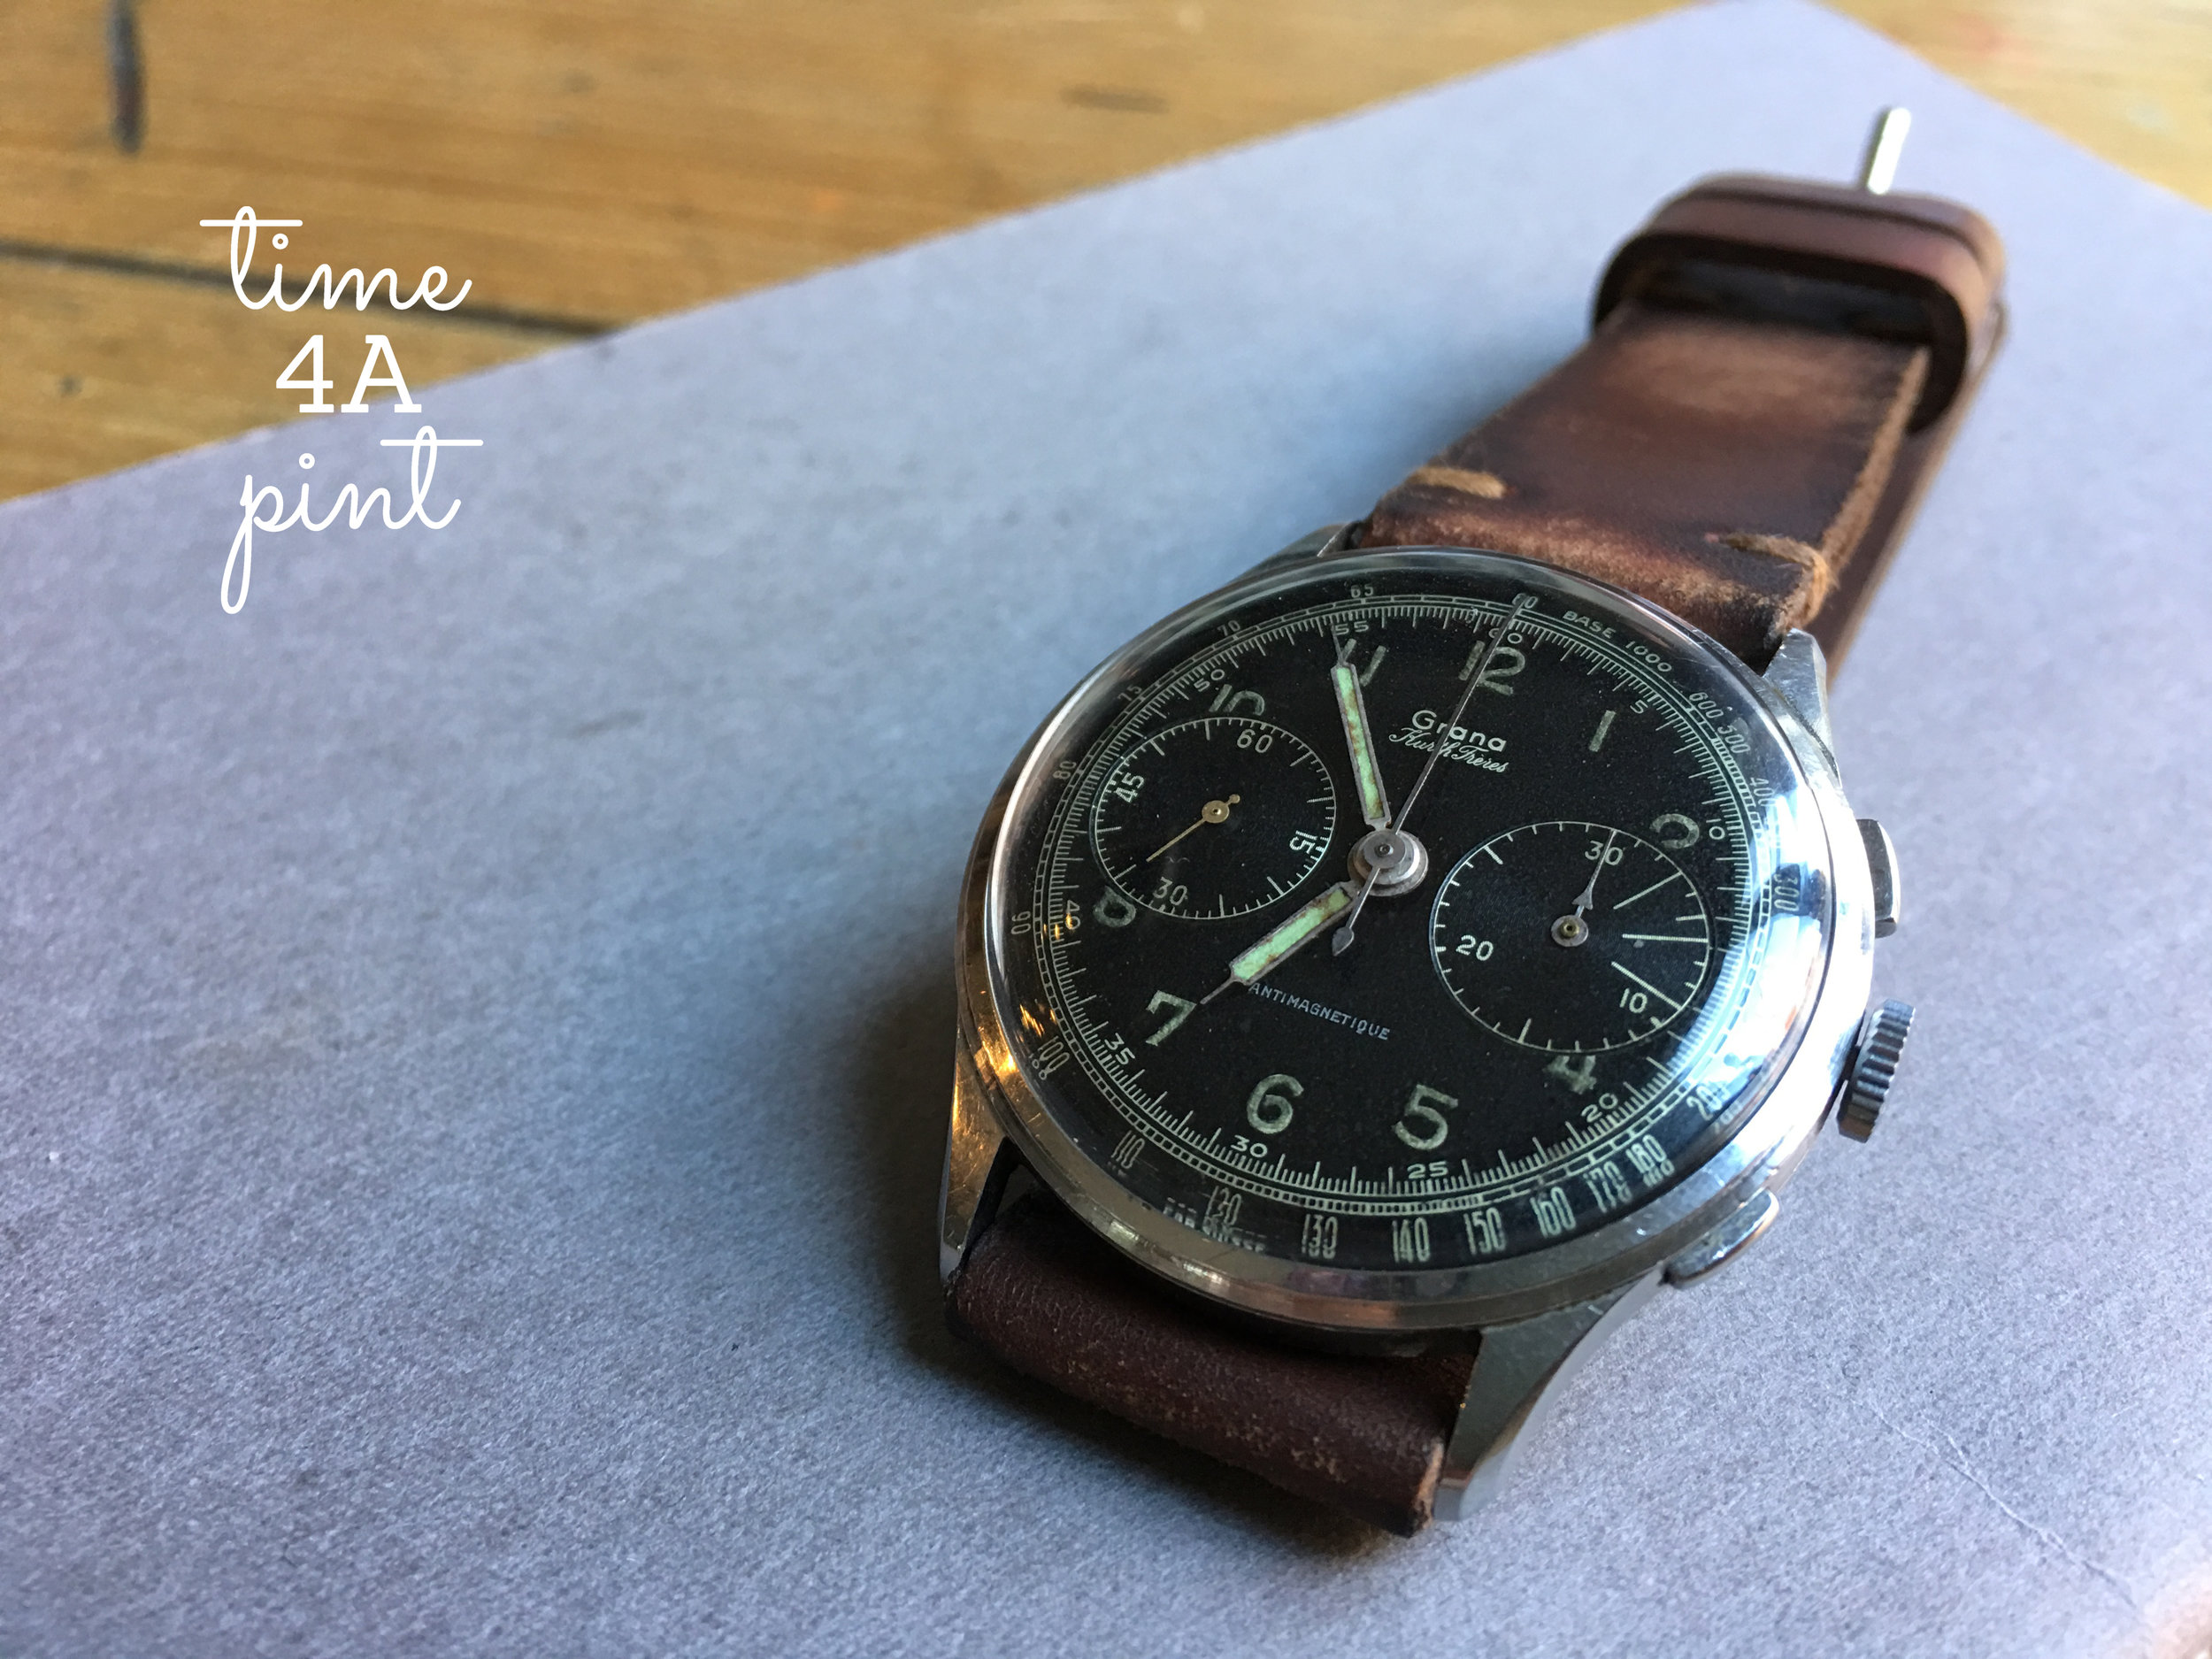 Hungarian Airforce Issued Grana Chronograph